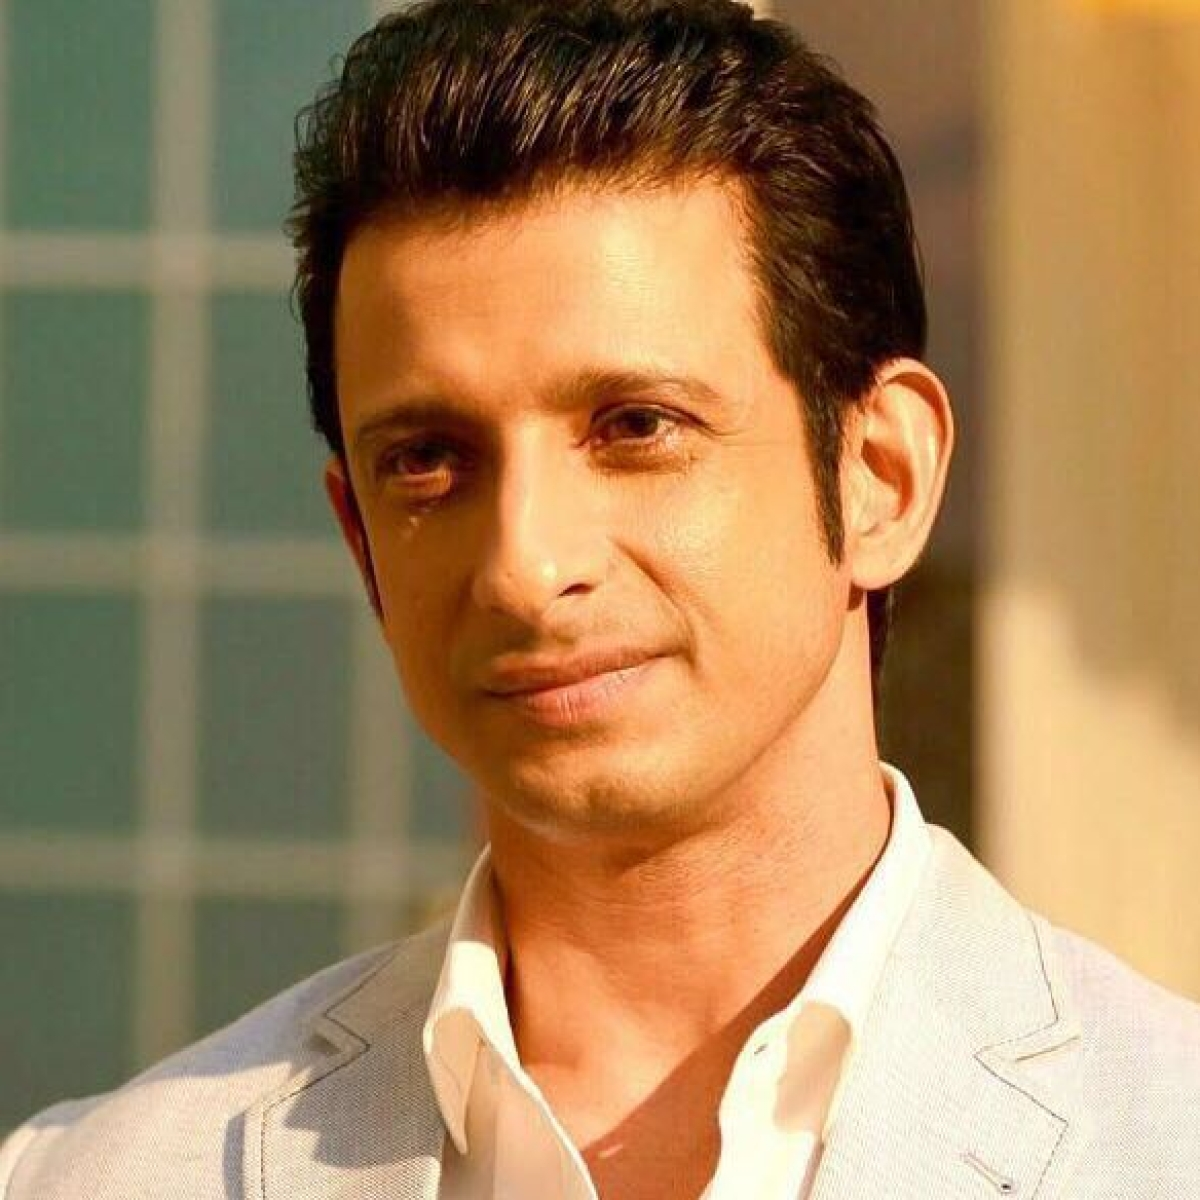 '3 Idiots' actor Sharman Joshi's father and veteran theatre artist Arvind Joshi passes away